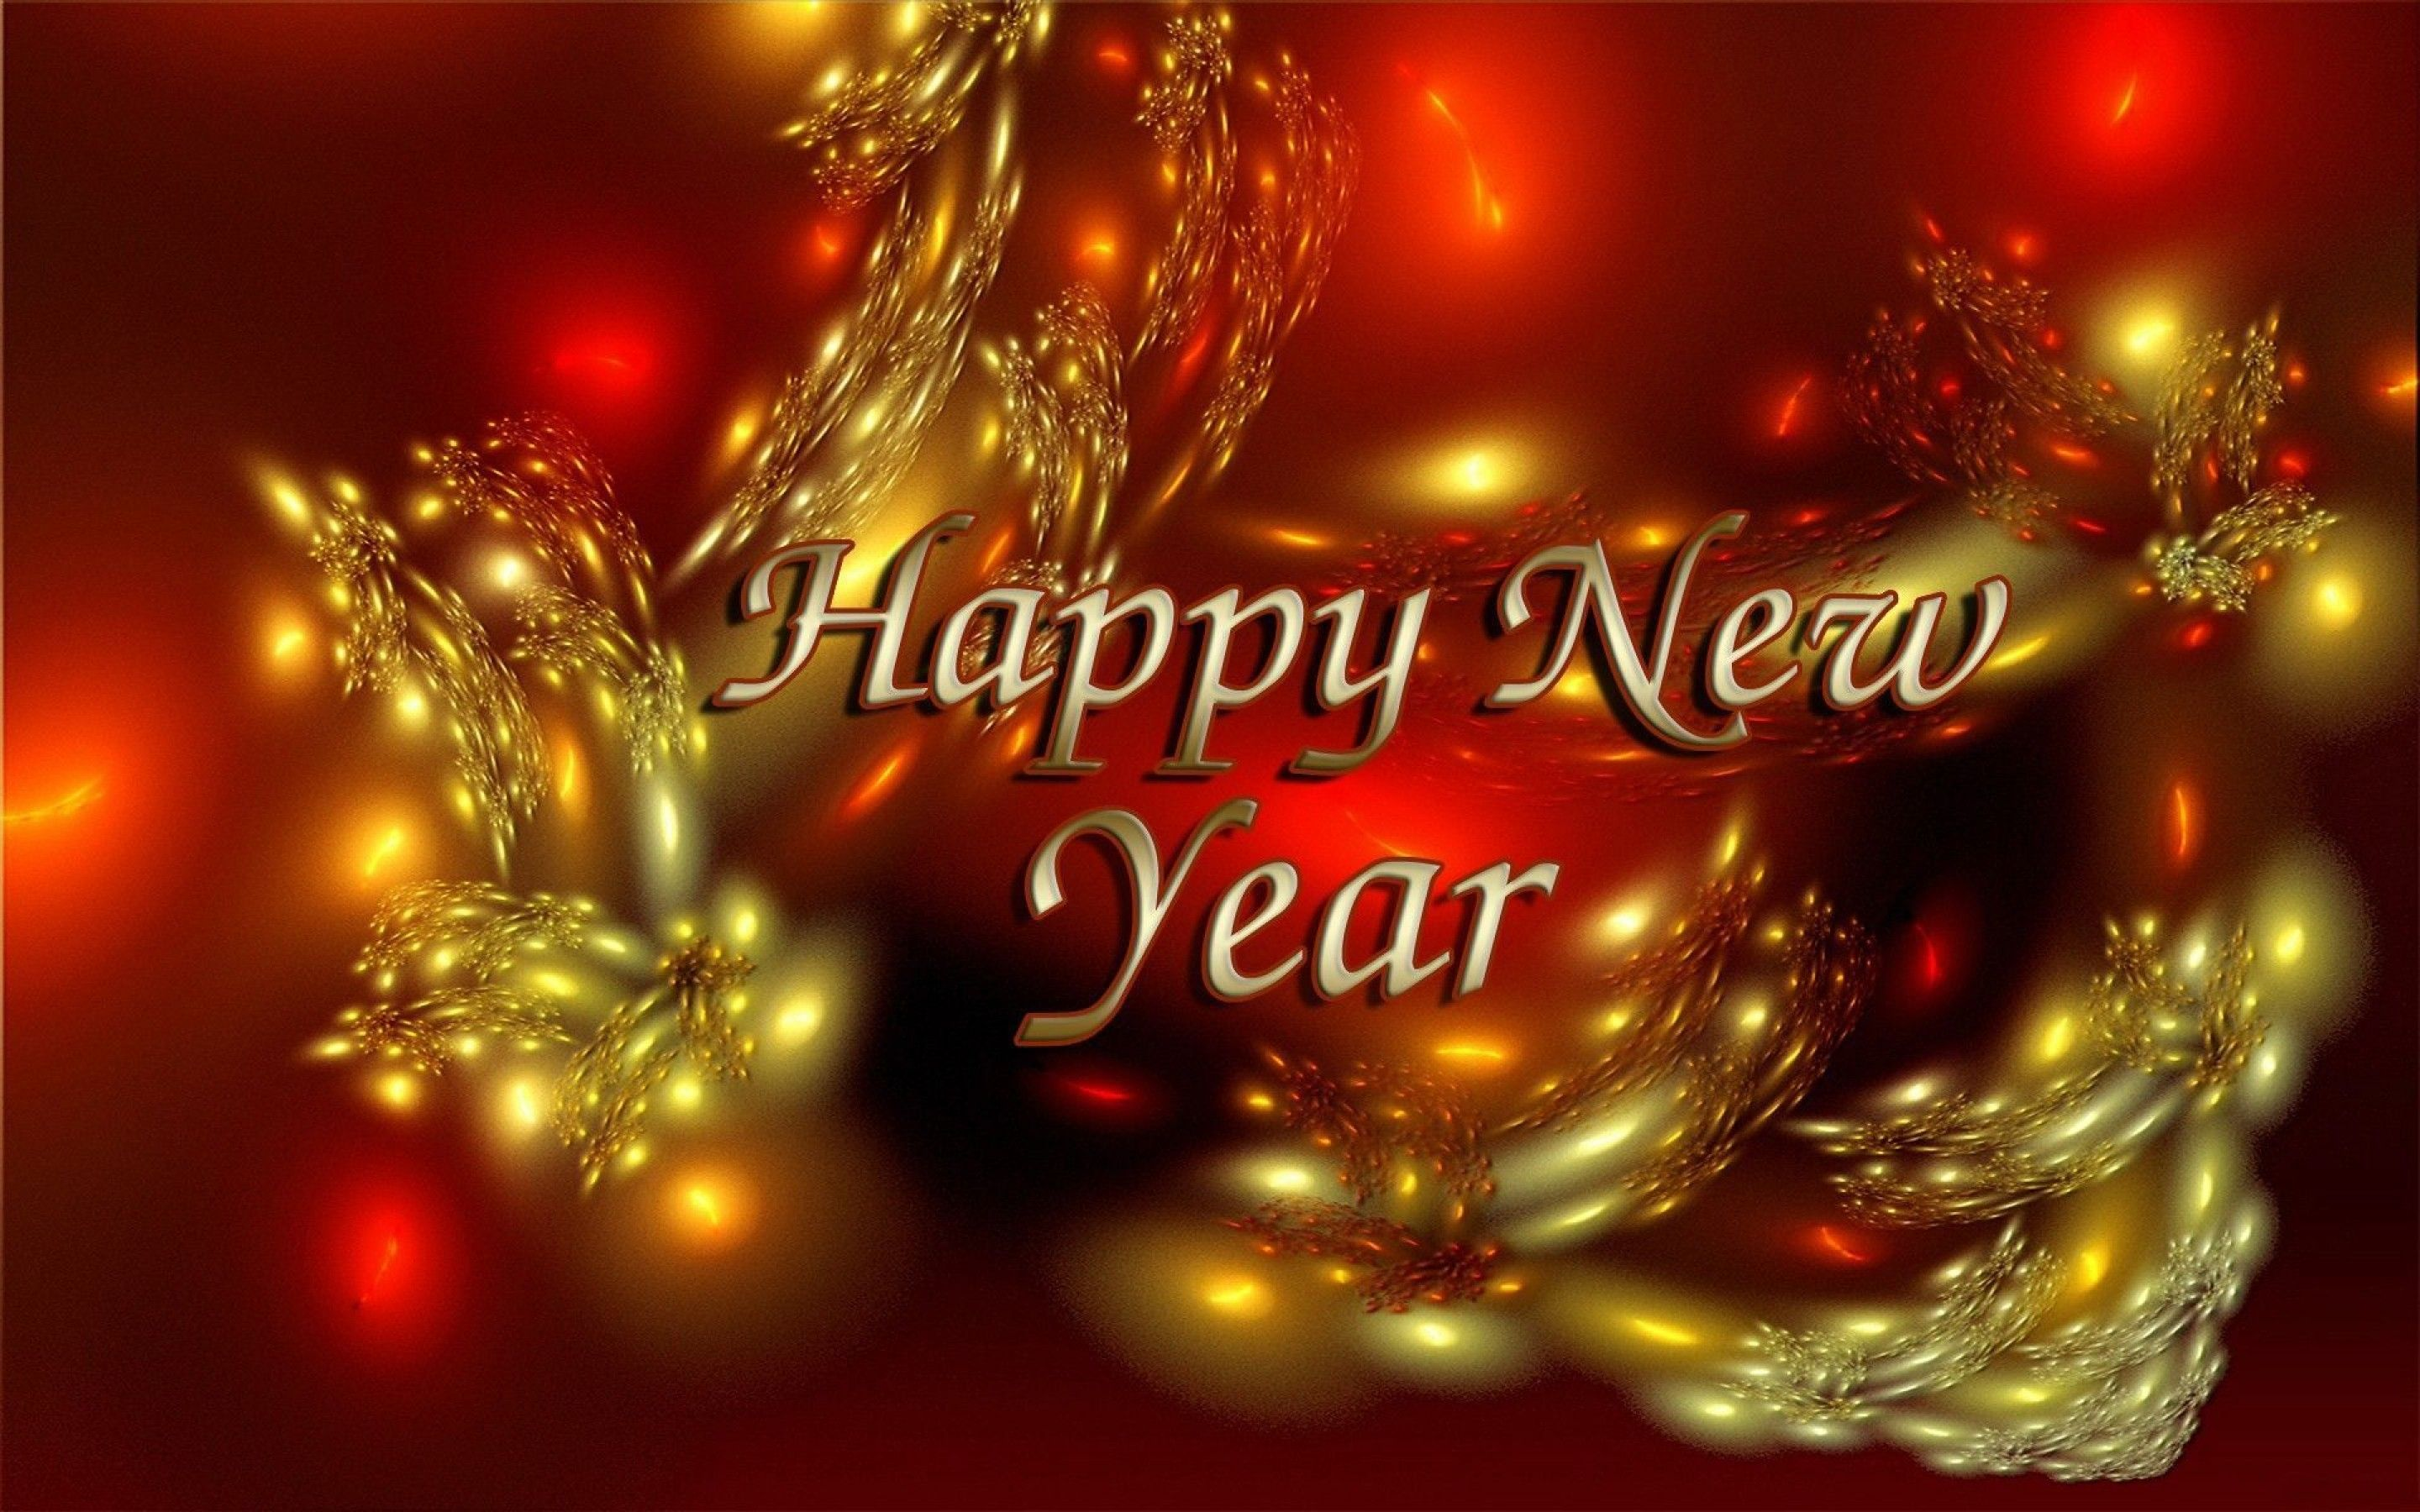 happy new year 2016 wallpapers and images httpwwwnewyear2016quotescom